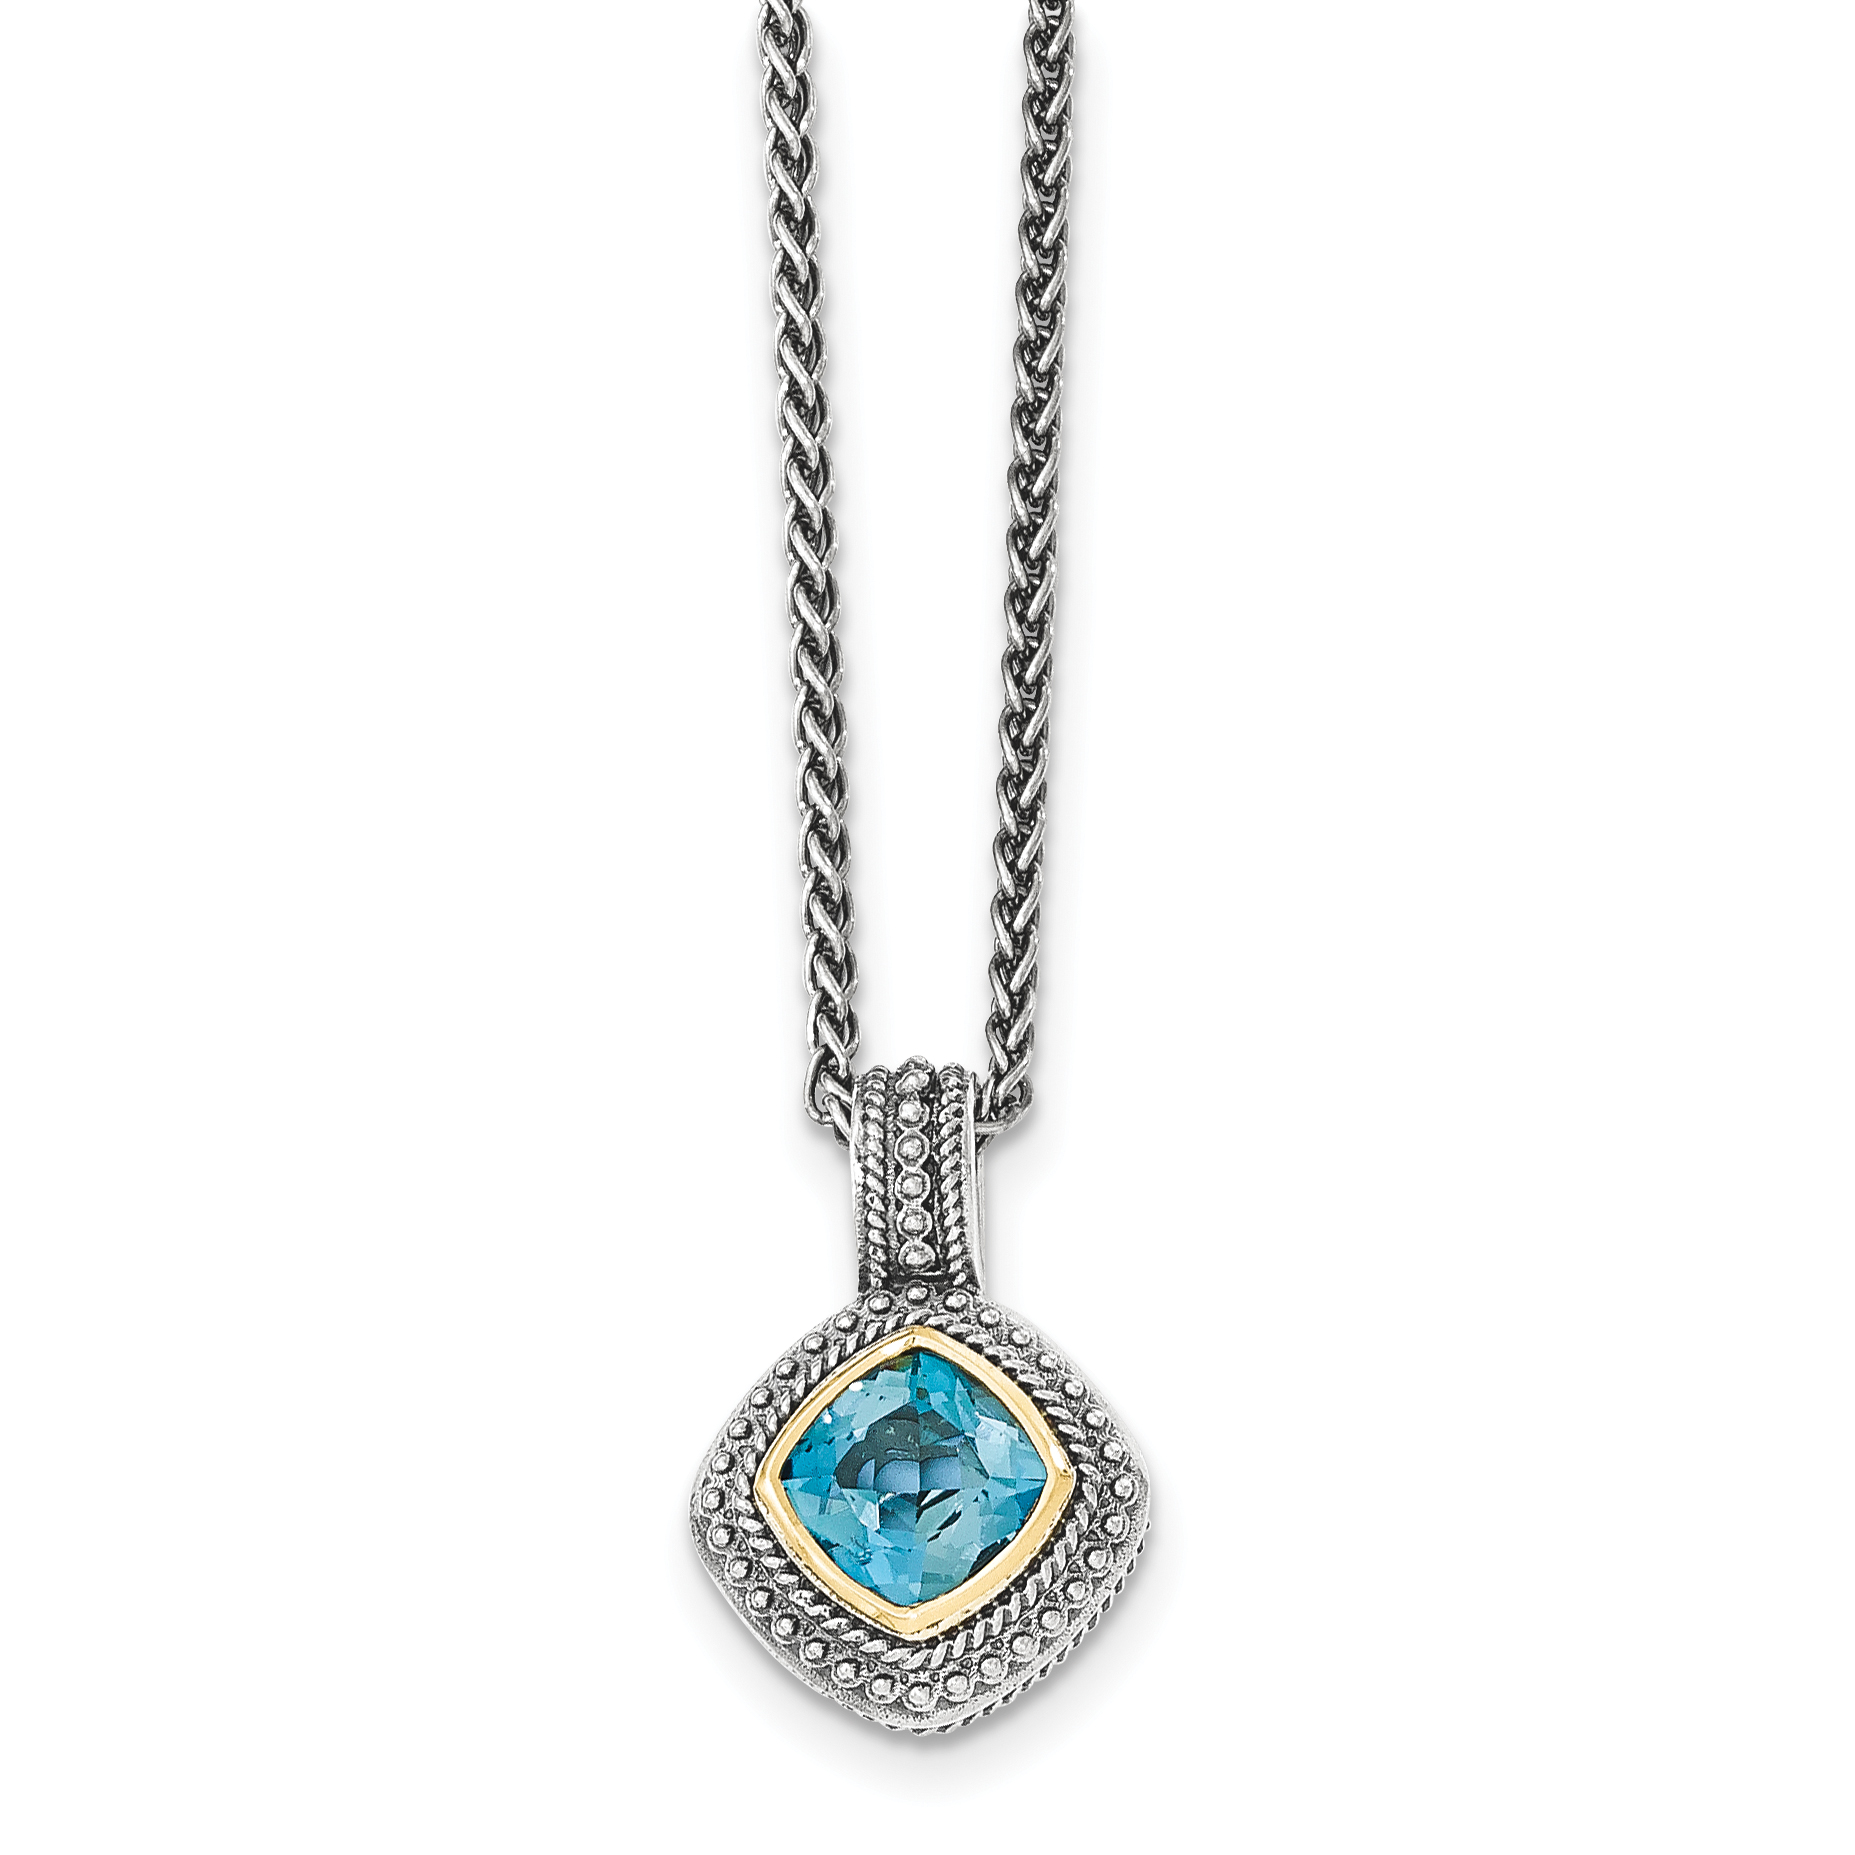 Sterling Silver w 14k London Blue Topaz Necklace by Saris and Things QG